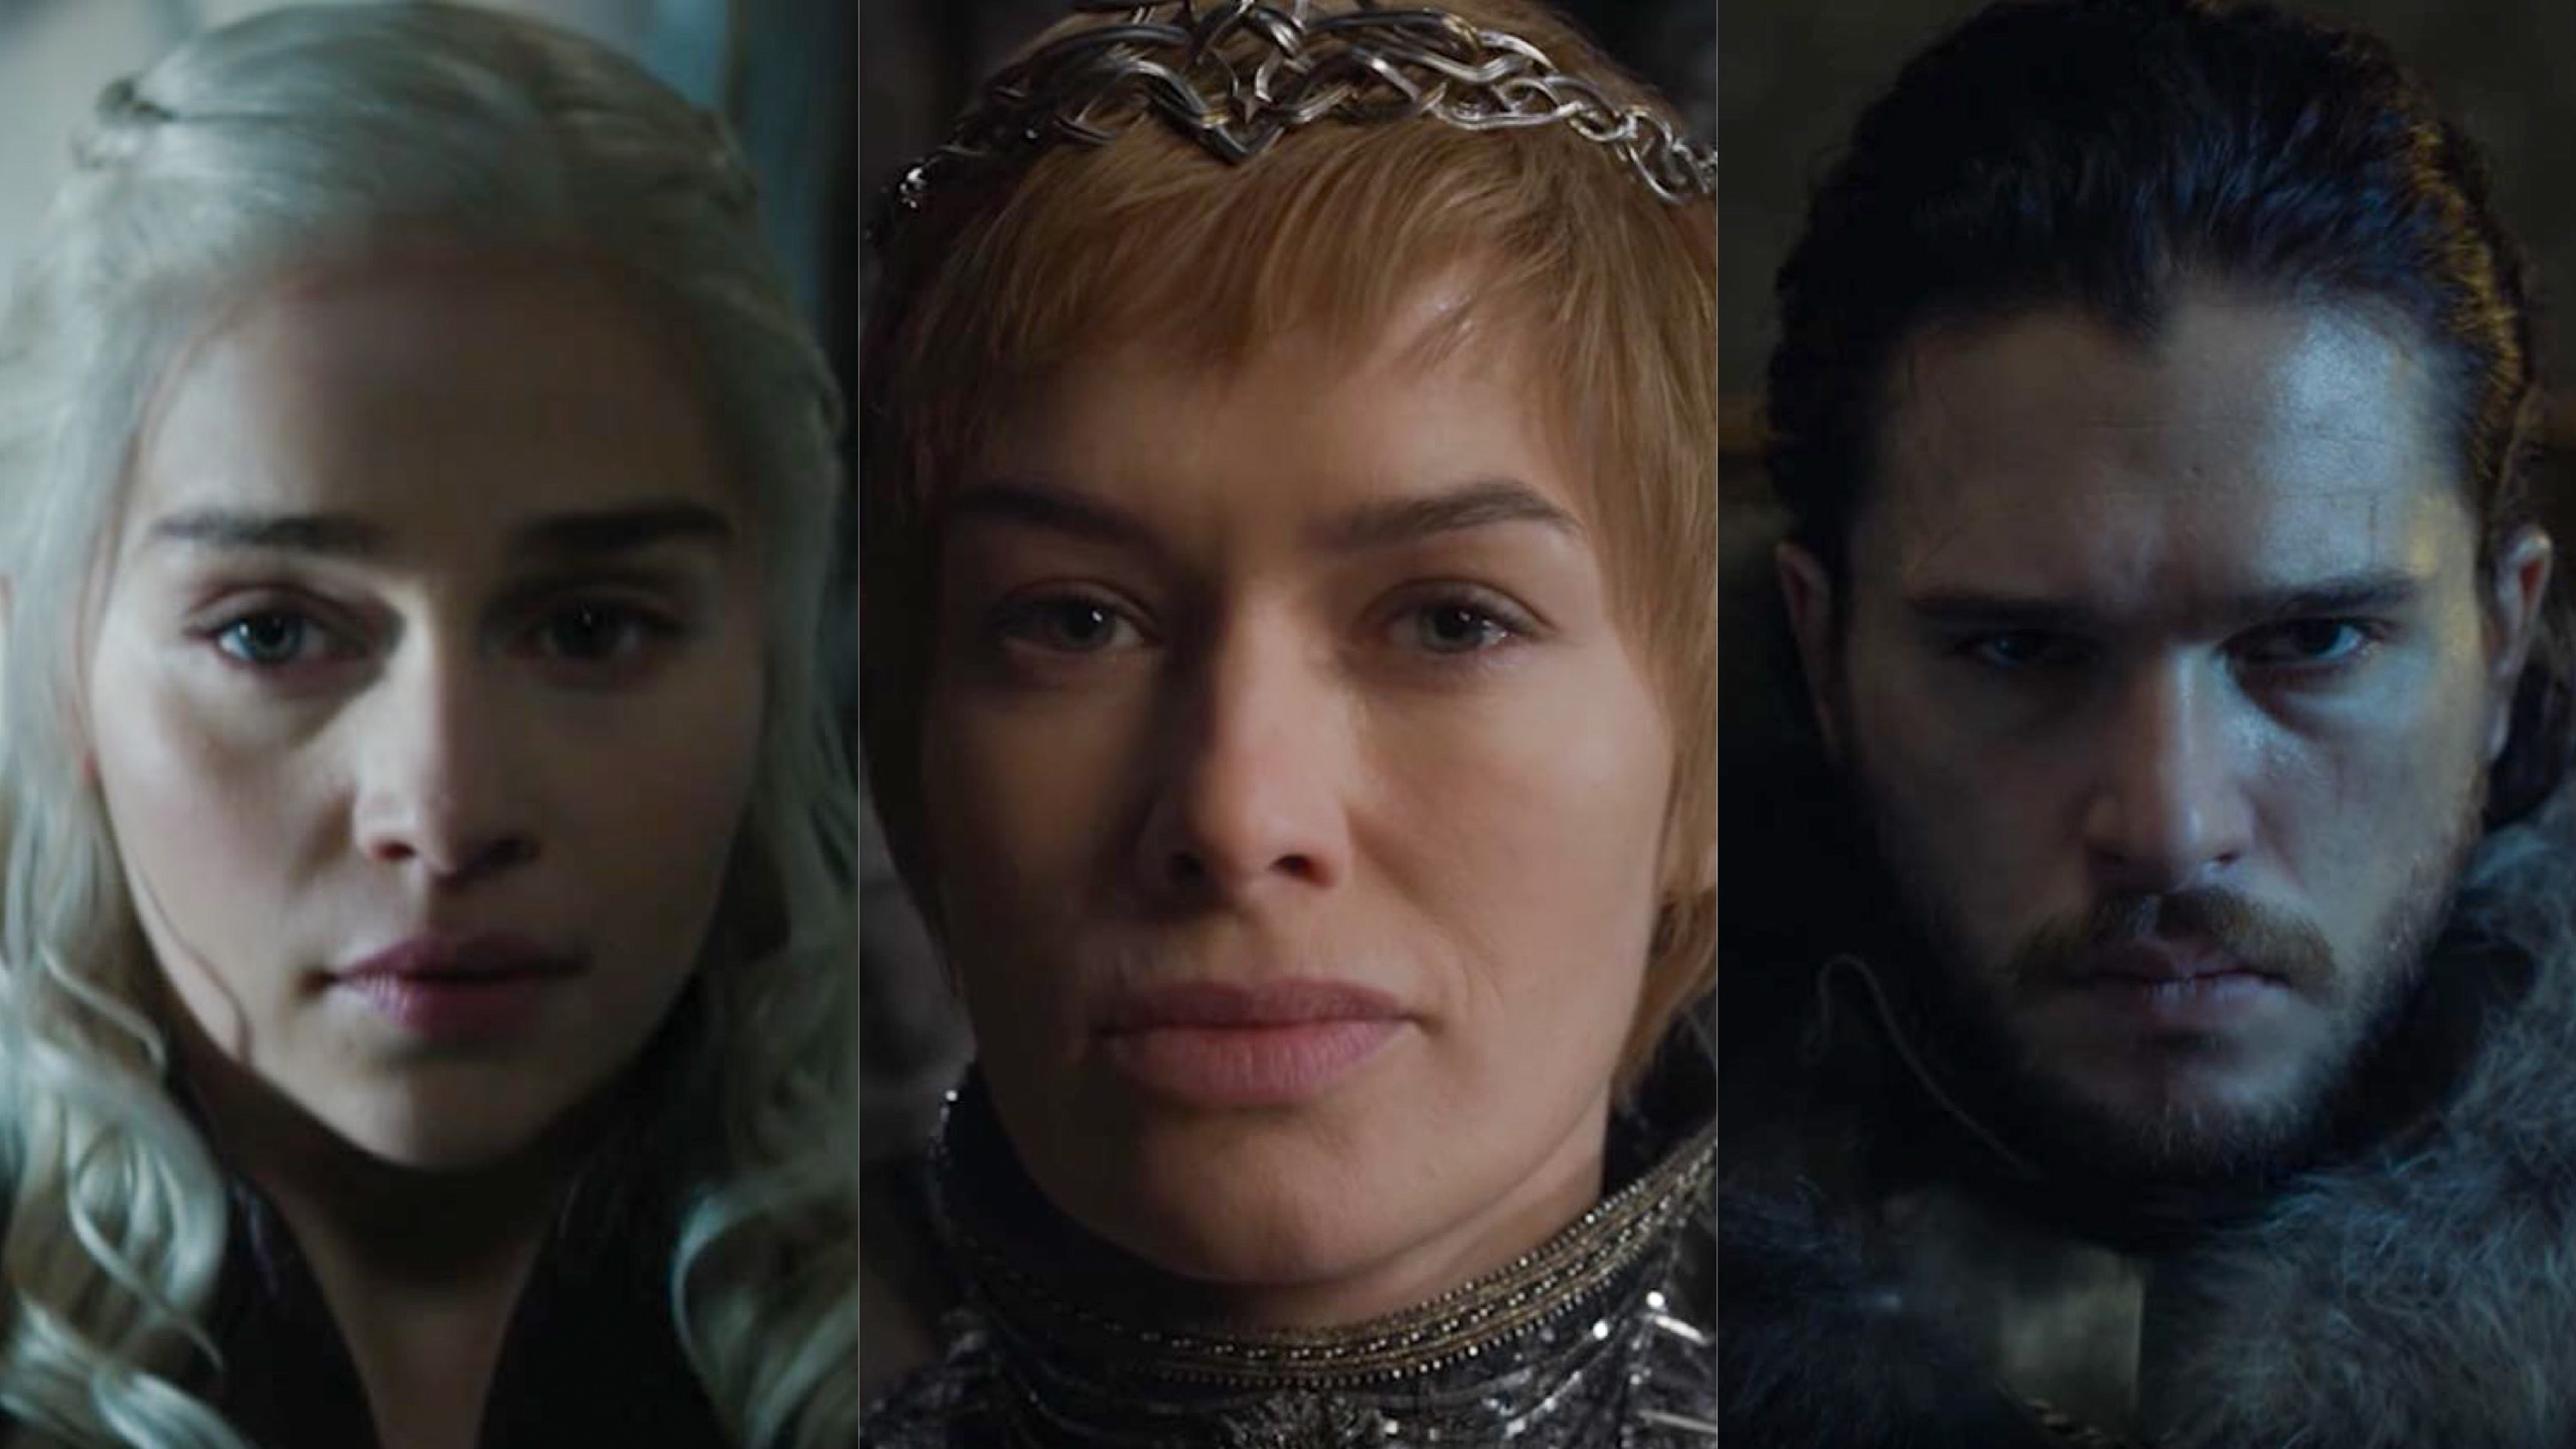 Screengrabs from YouTube/GameofThrones